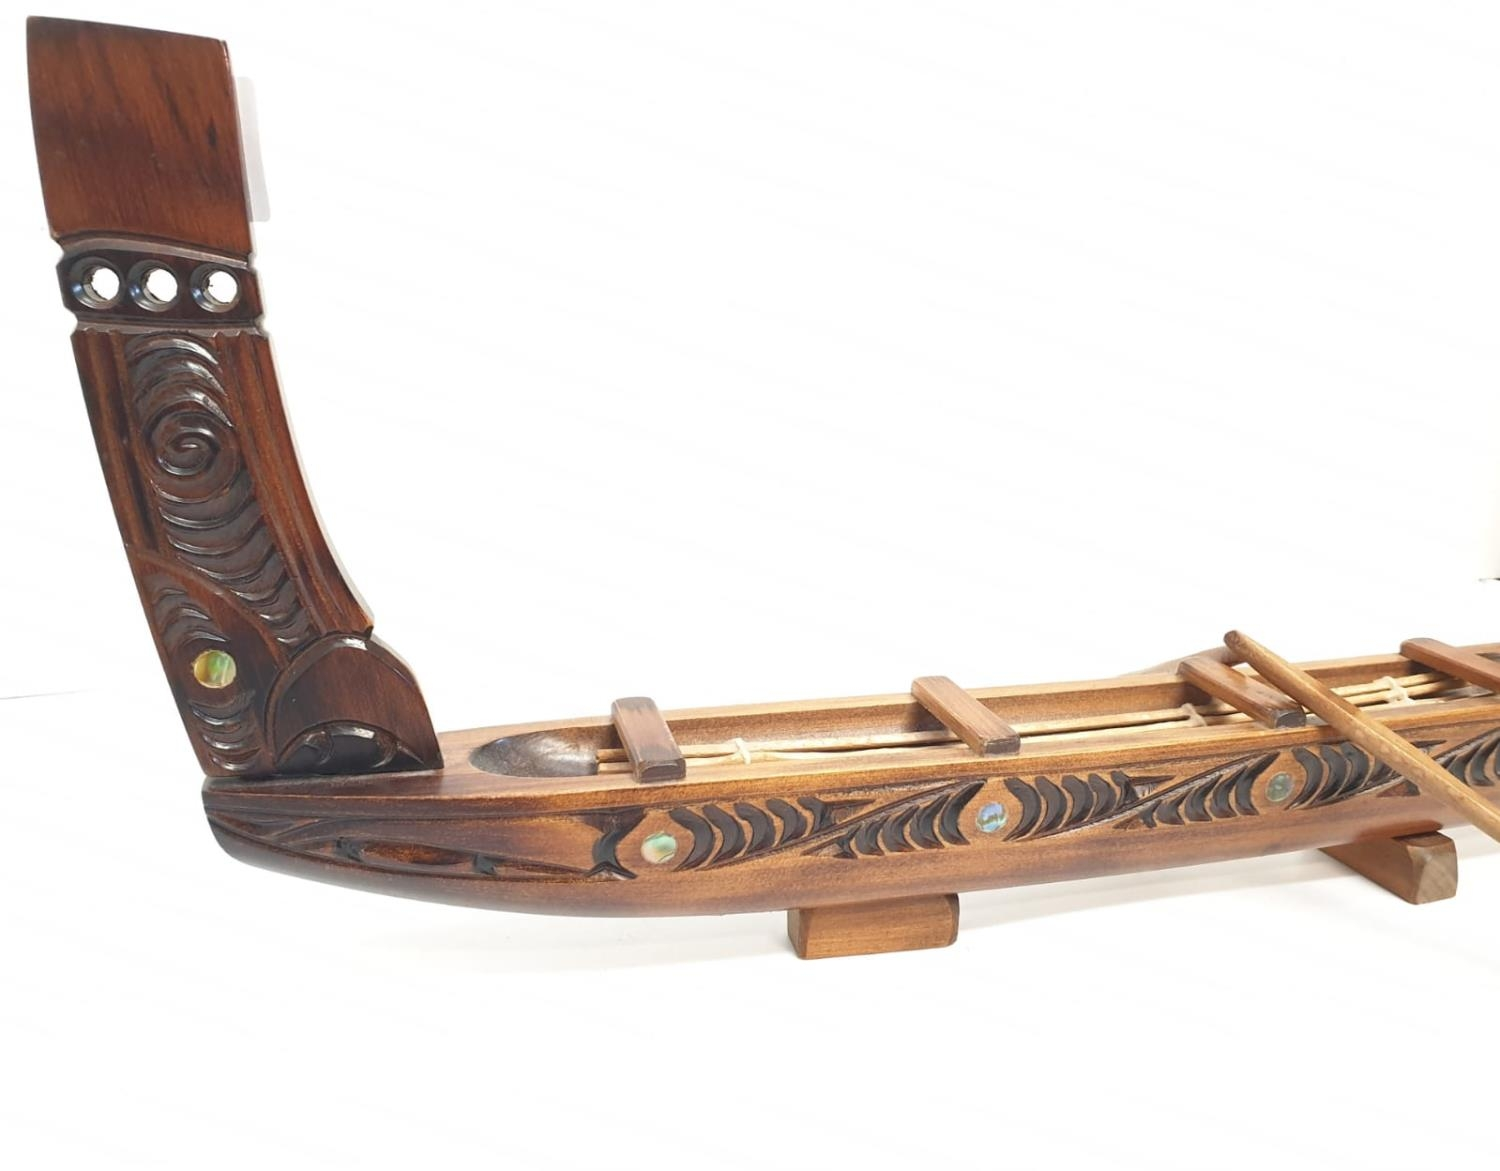 Hawaiian hand carved wooden boat, 49x20cm - Image 4 of 9